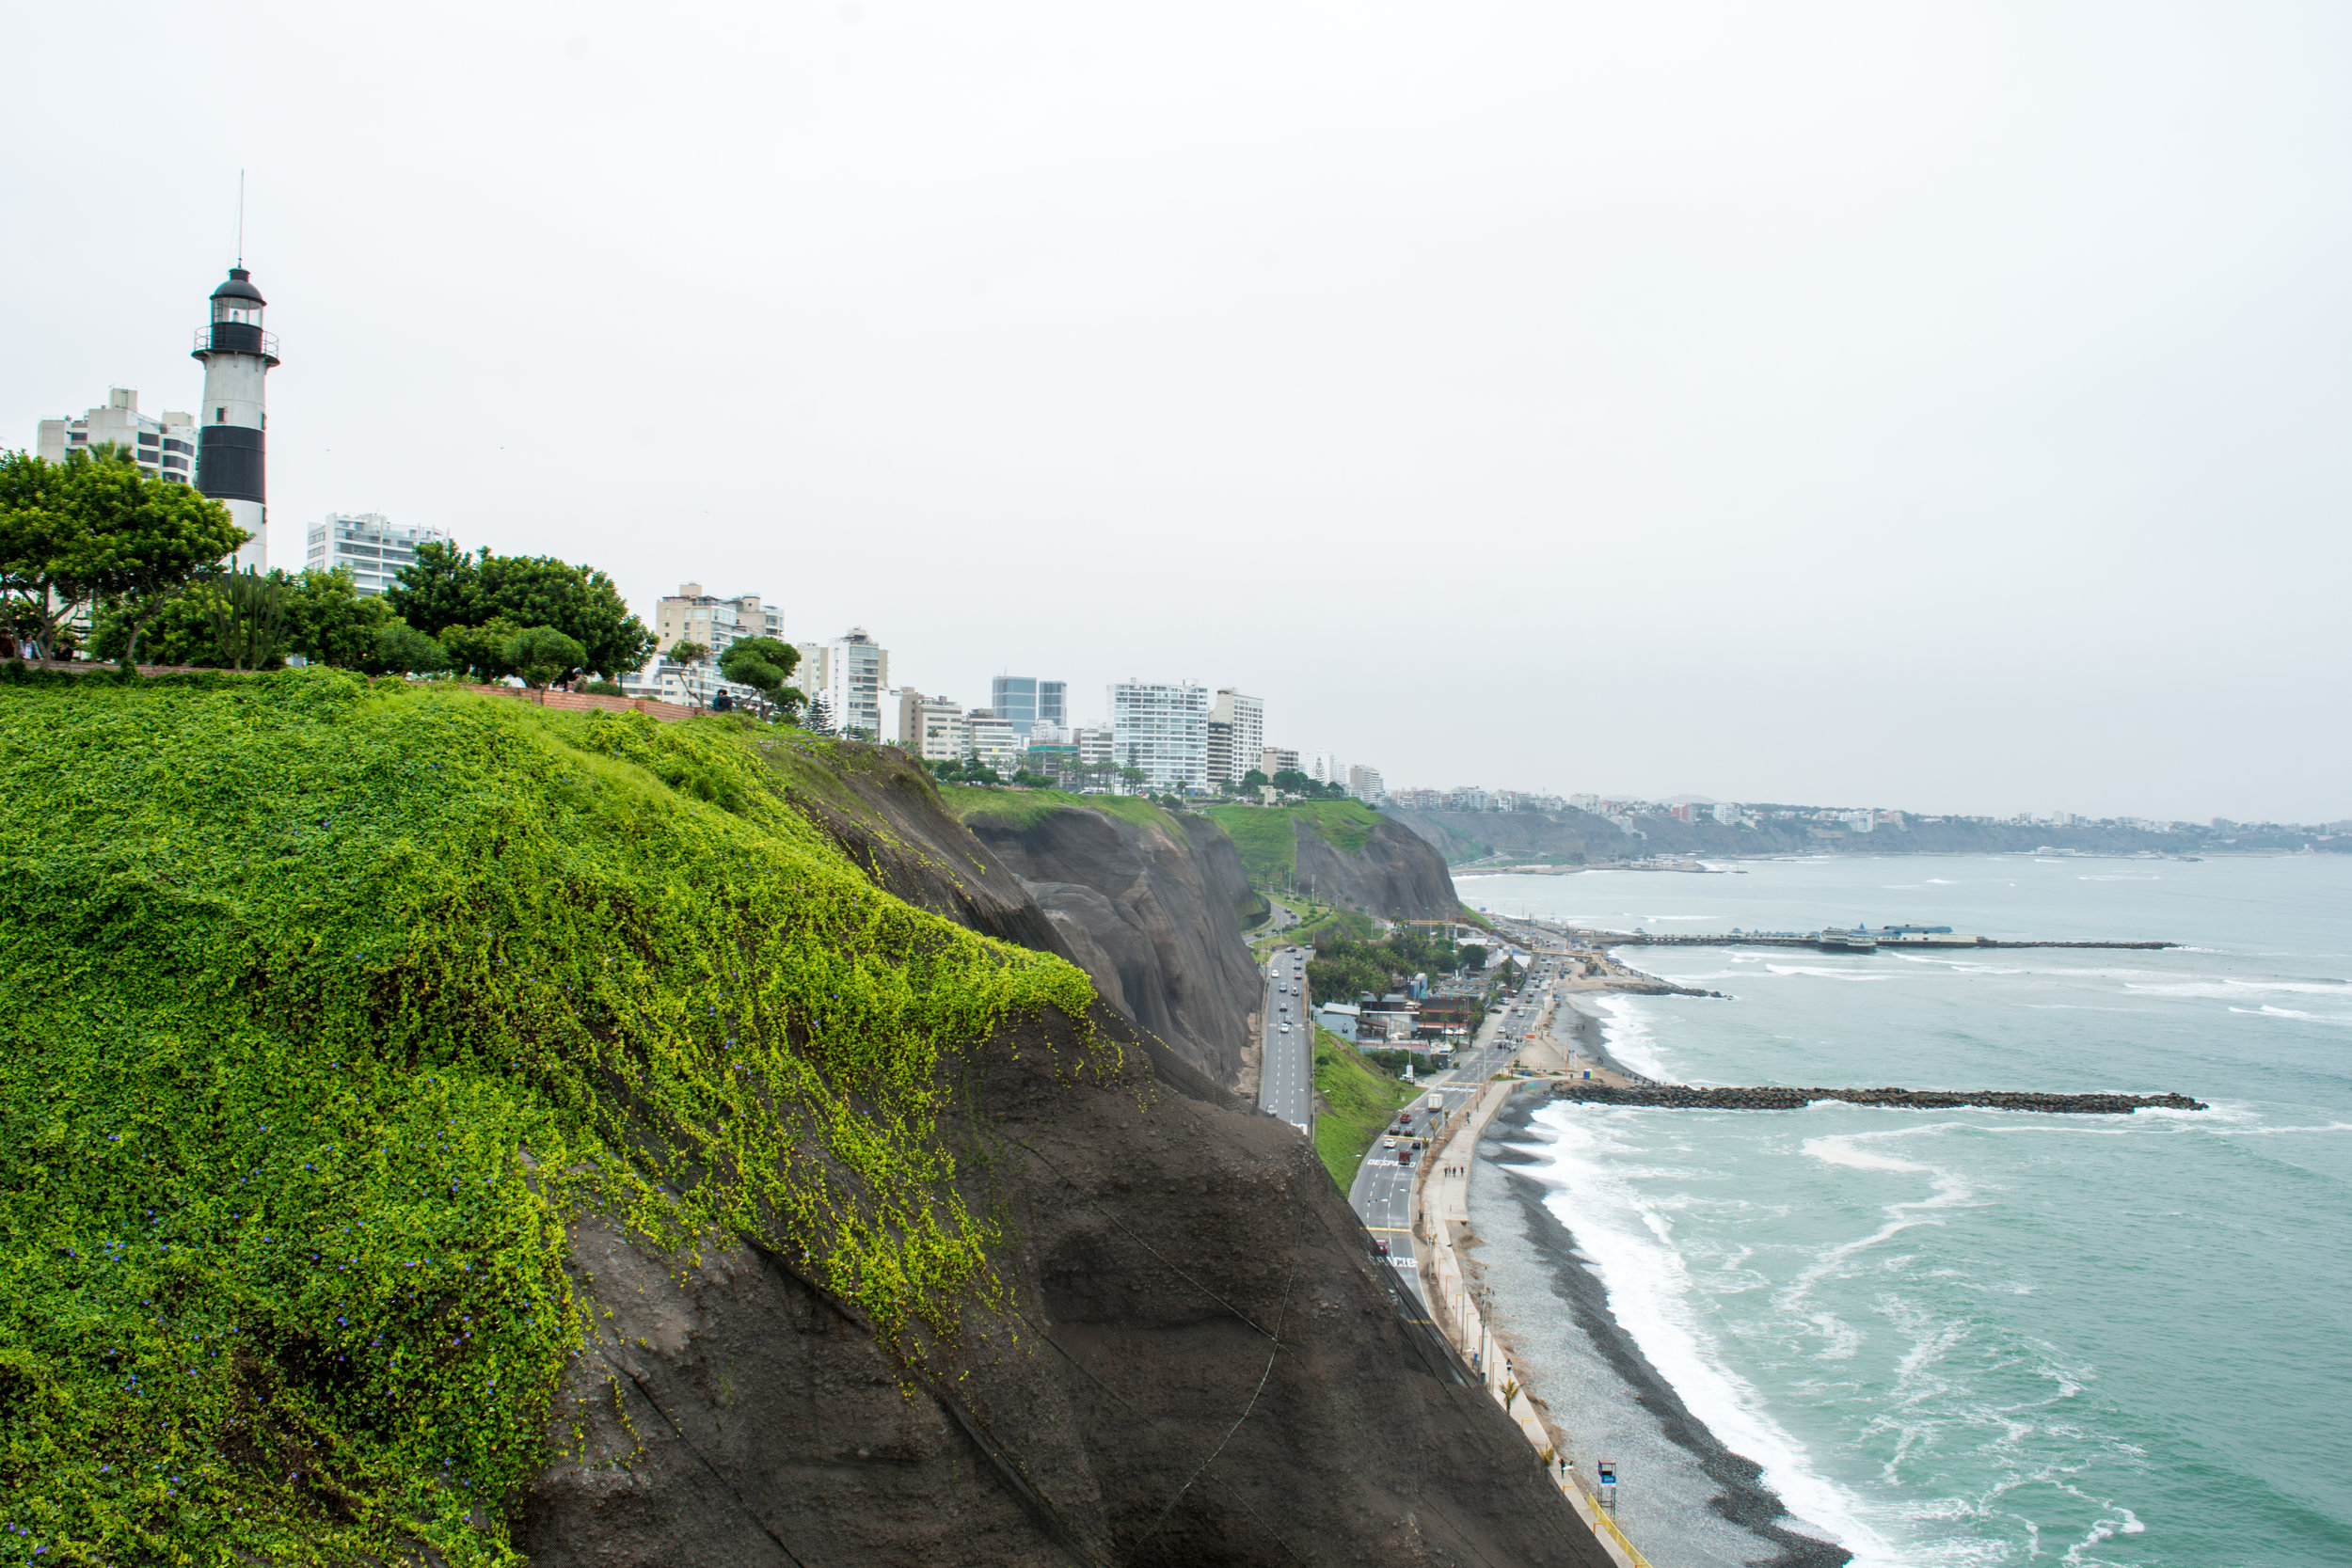 Miraflores Cliffside in Lima, Peru